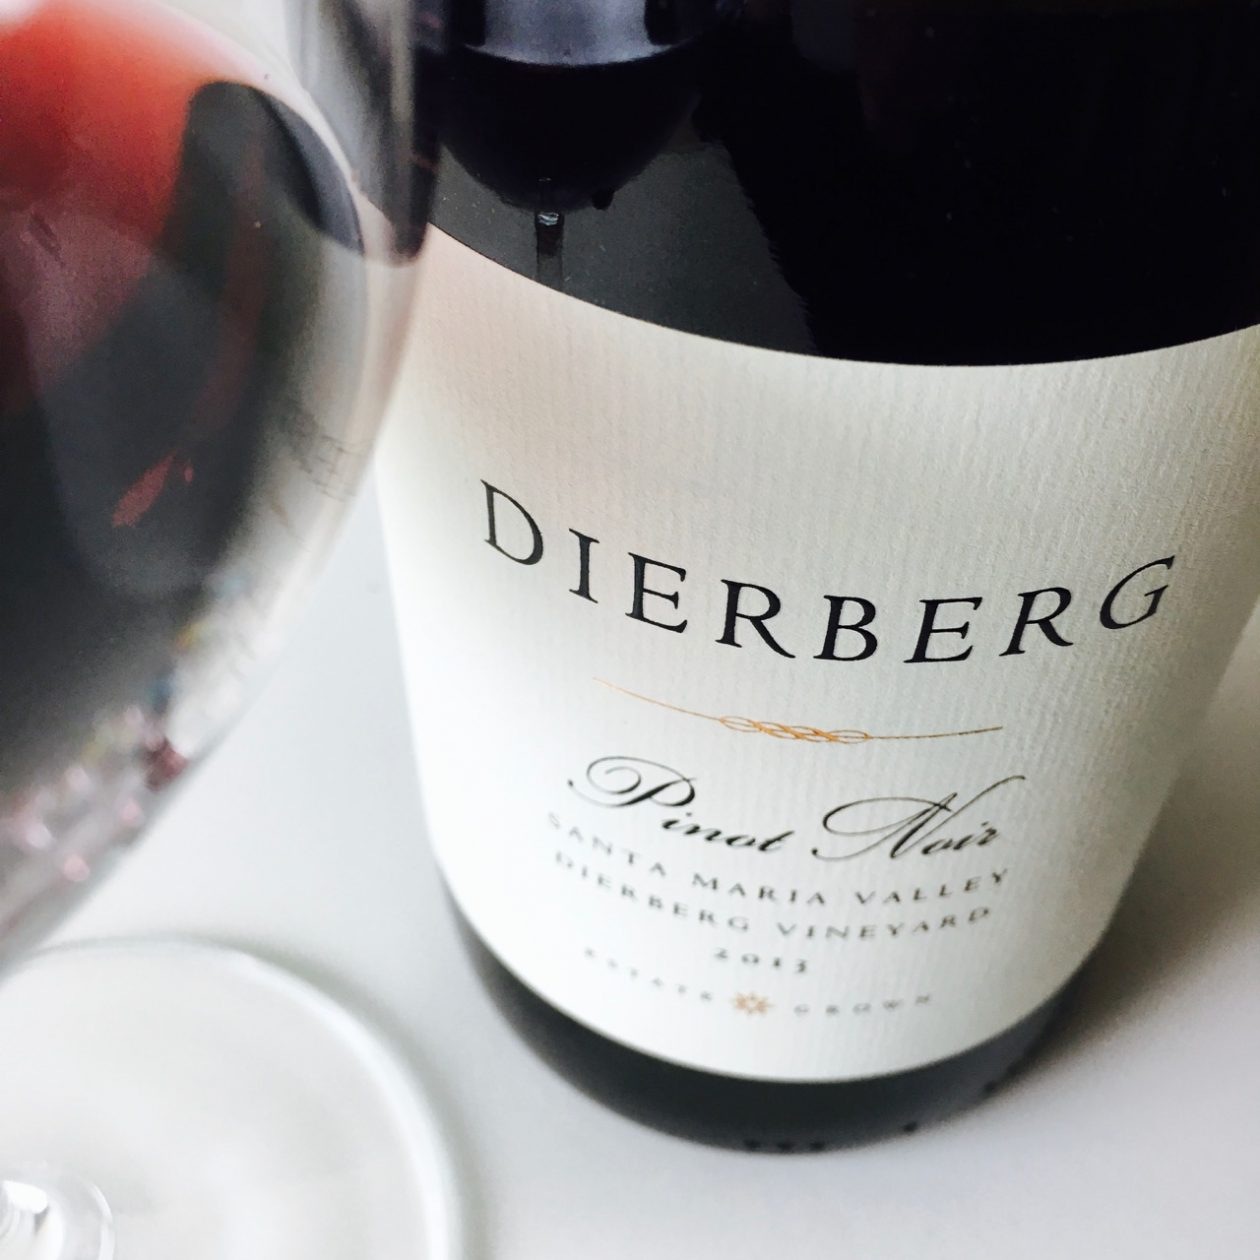 2013 Dierberg Pinot Noir Estate Santa Maria Valley